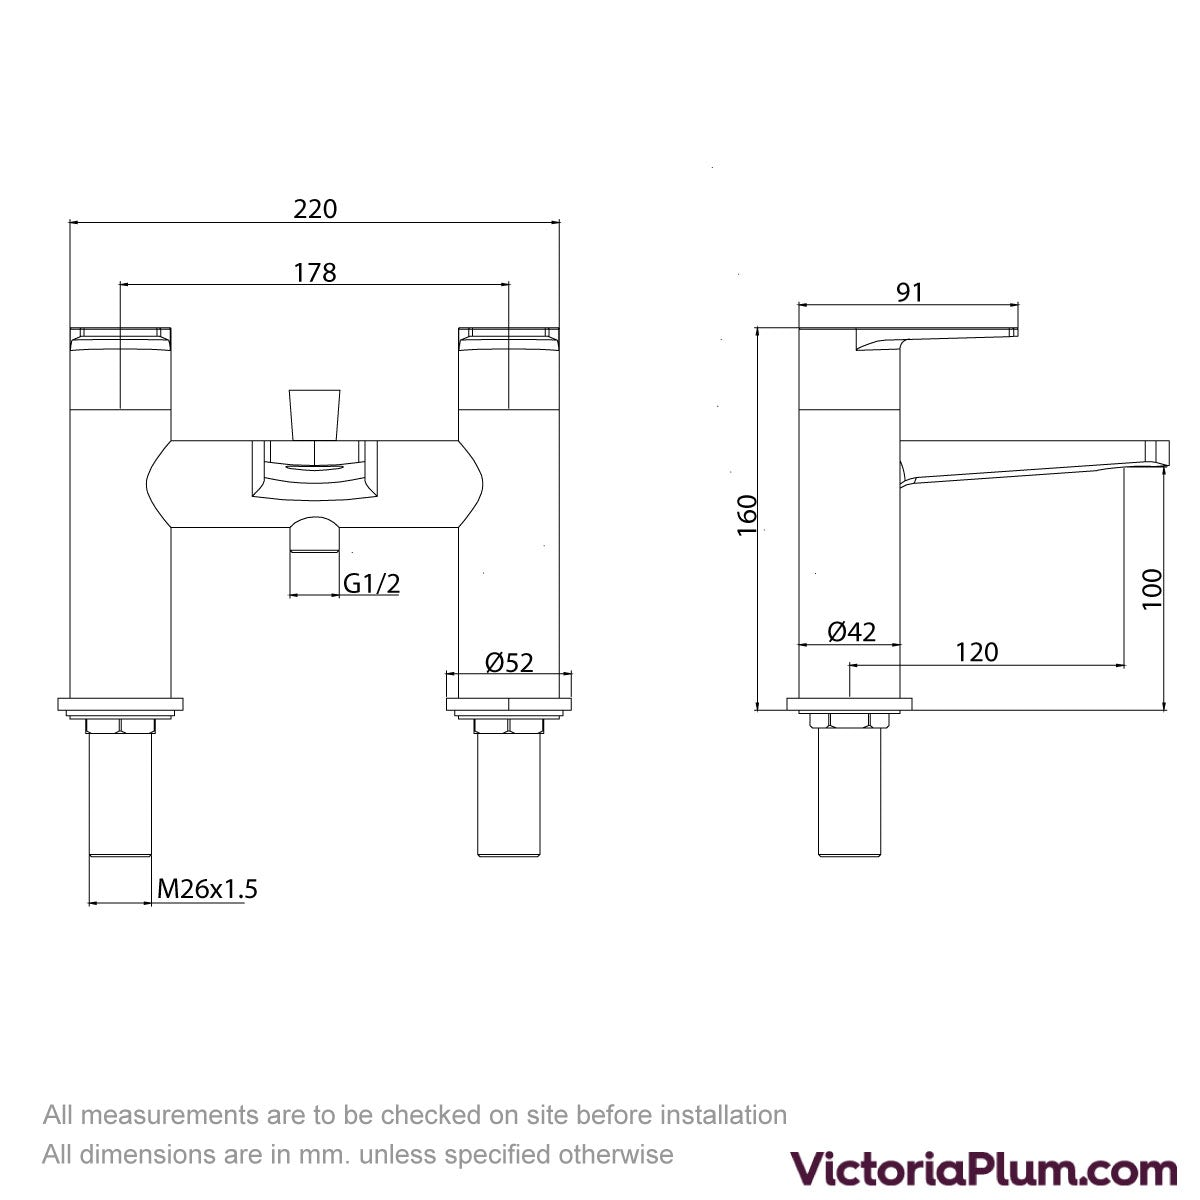 Dimensions for Kirke Combo bath shower mixer tap